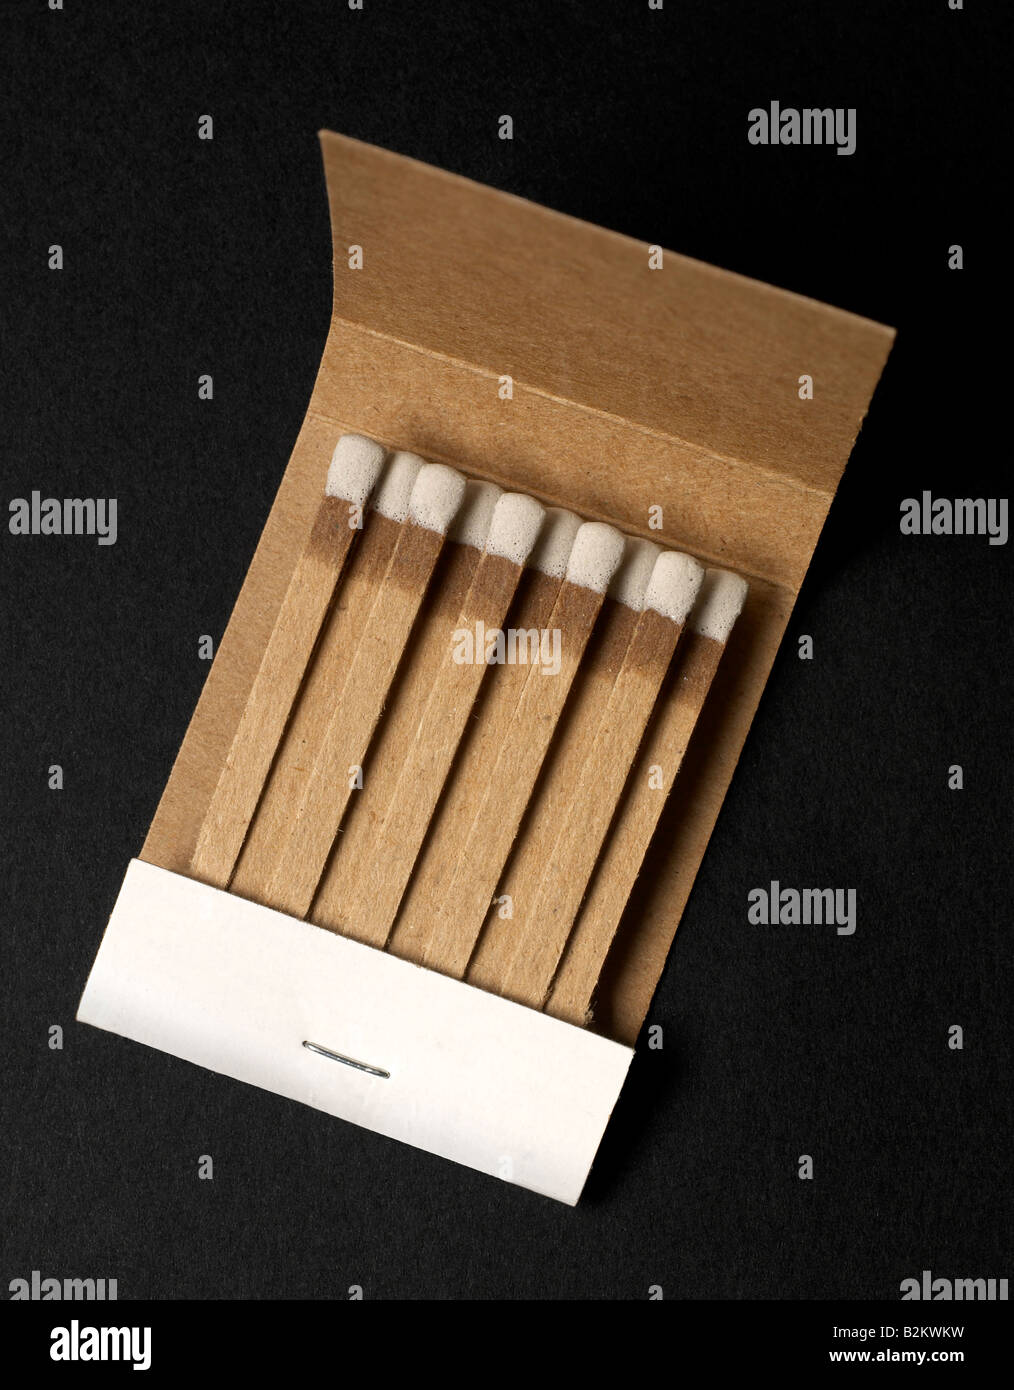 book of matches on black - Stock Image